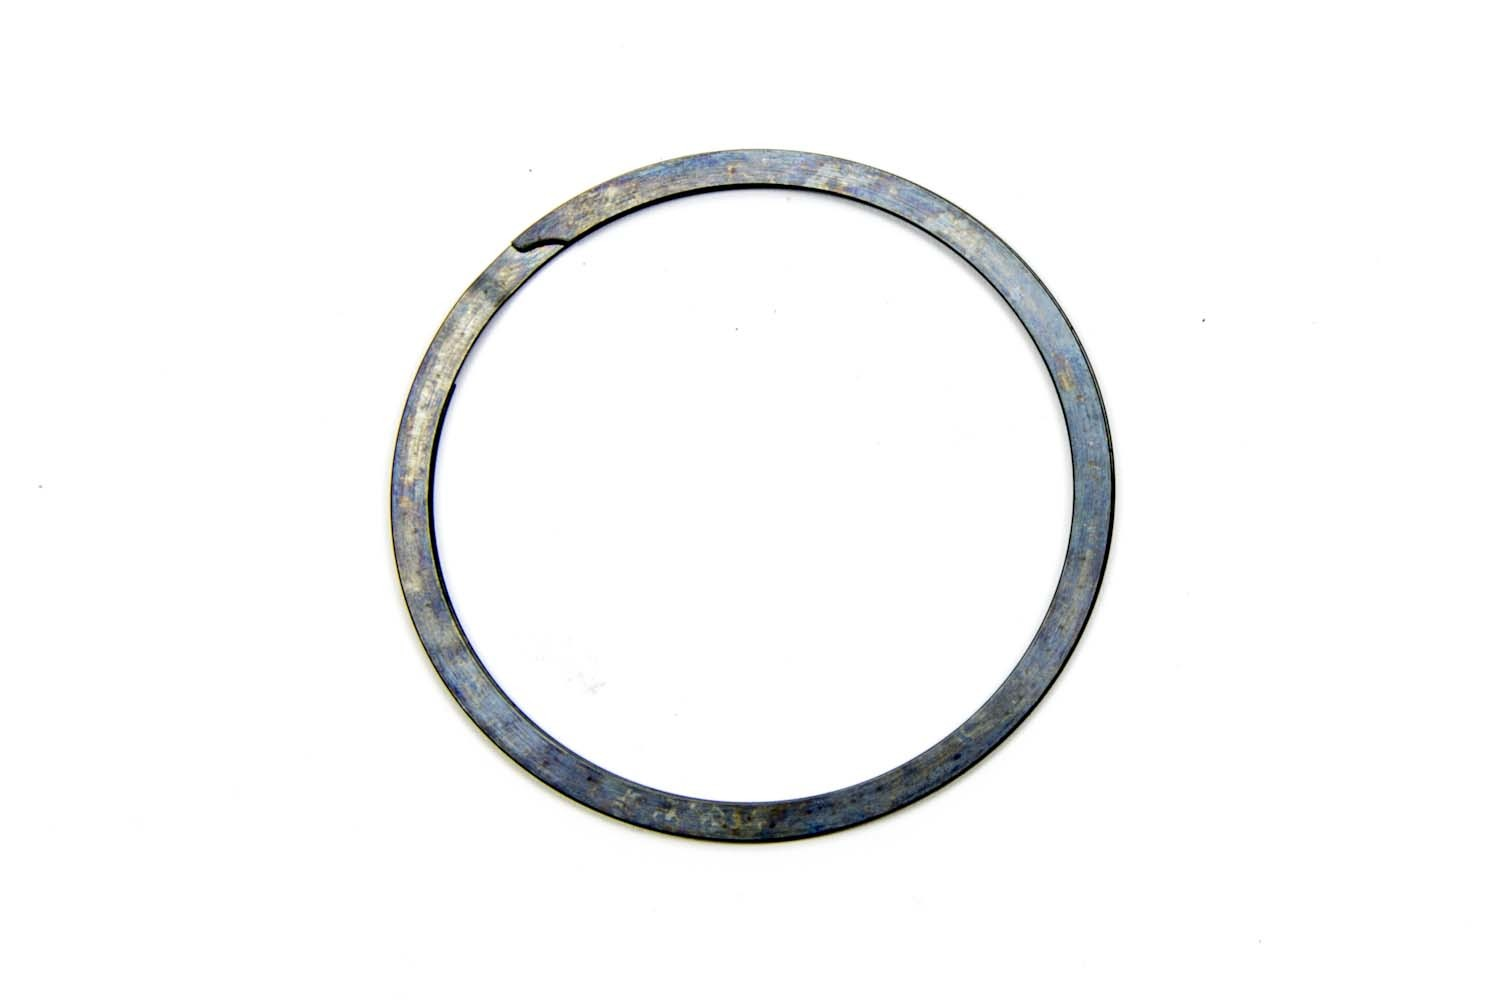 Howe Throw Out Bearing Snap Ring